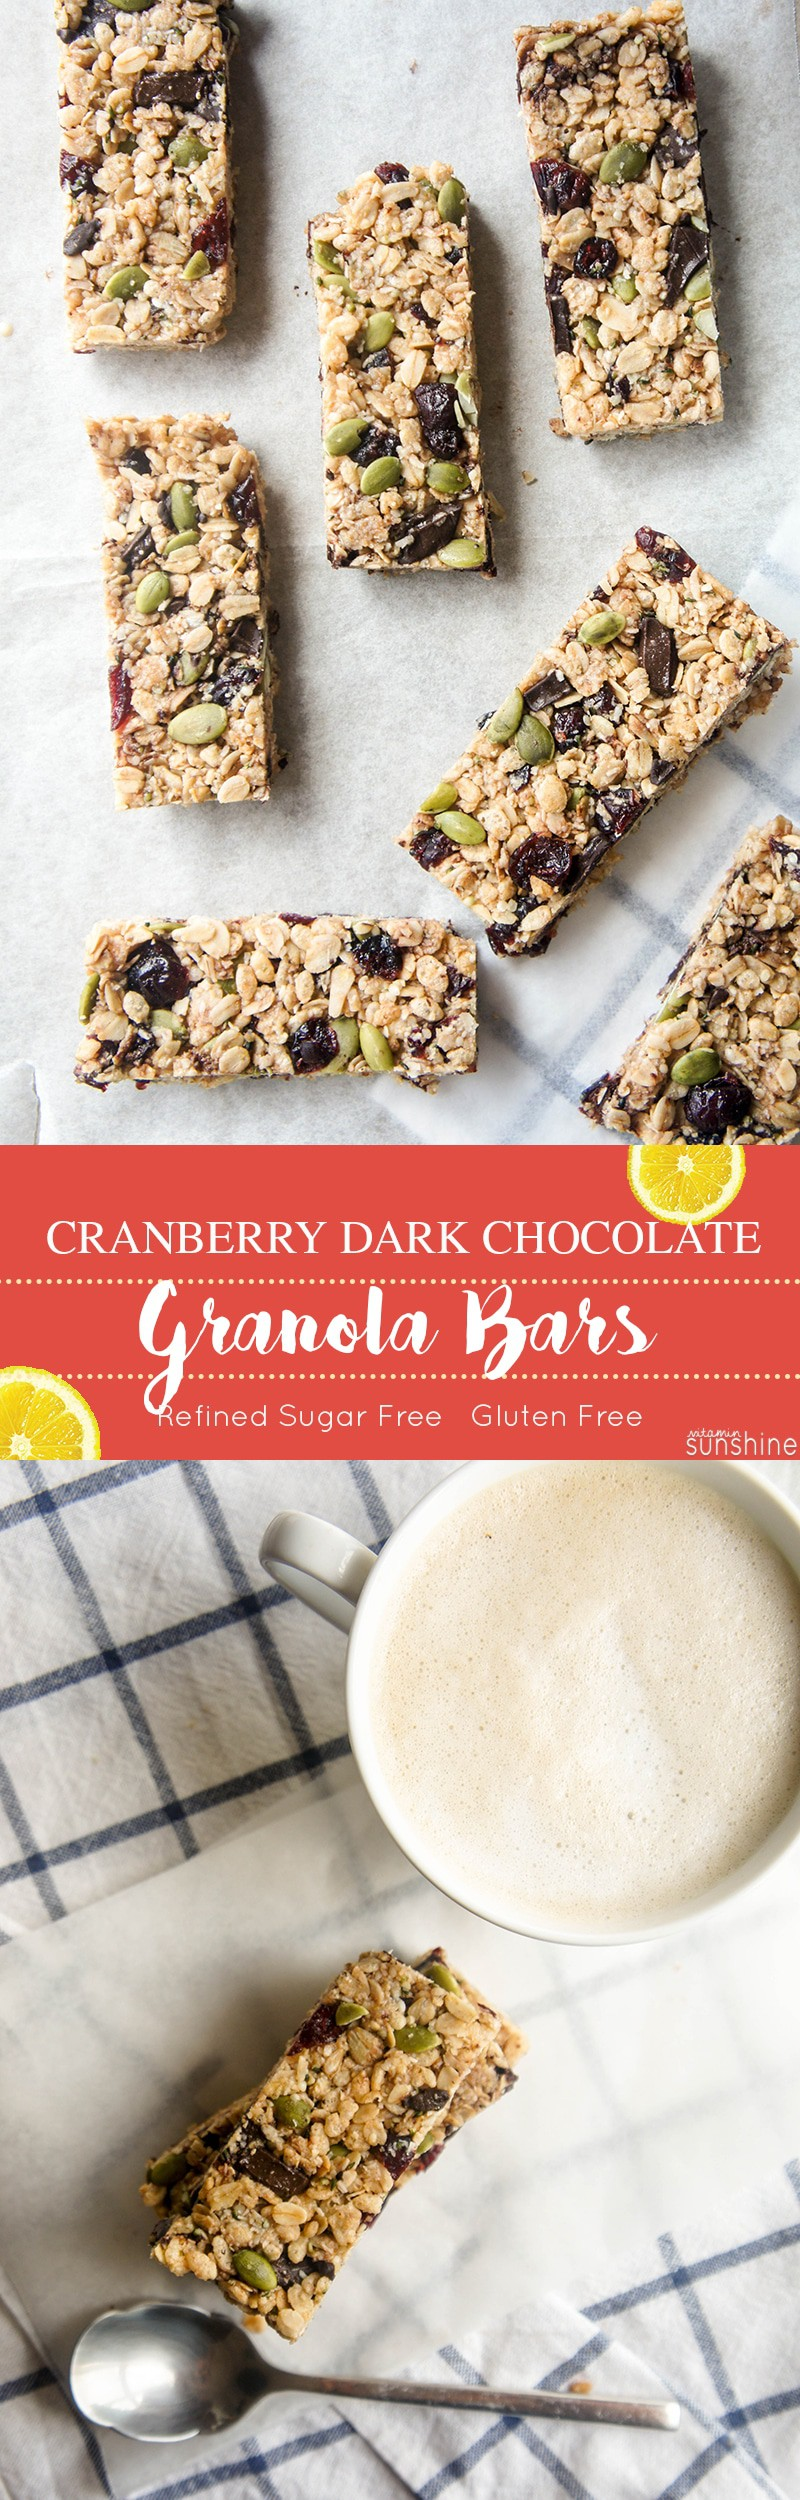 Cranberry Dark Chocolate Granola Bars / These gluten and nut free treats are packed with superfoods - oats, hemps seeds, pepitas, cranberries and dark chocolate. These delicious bars take minutes to put together!